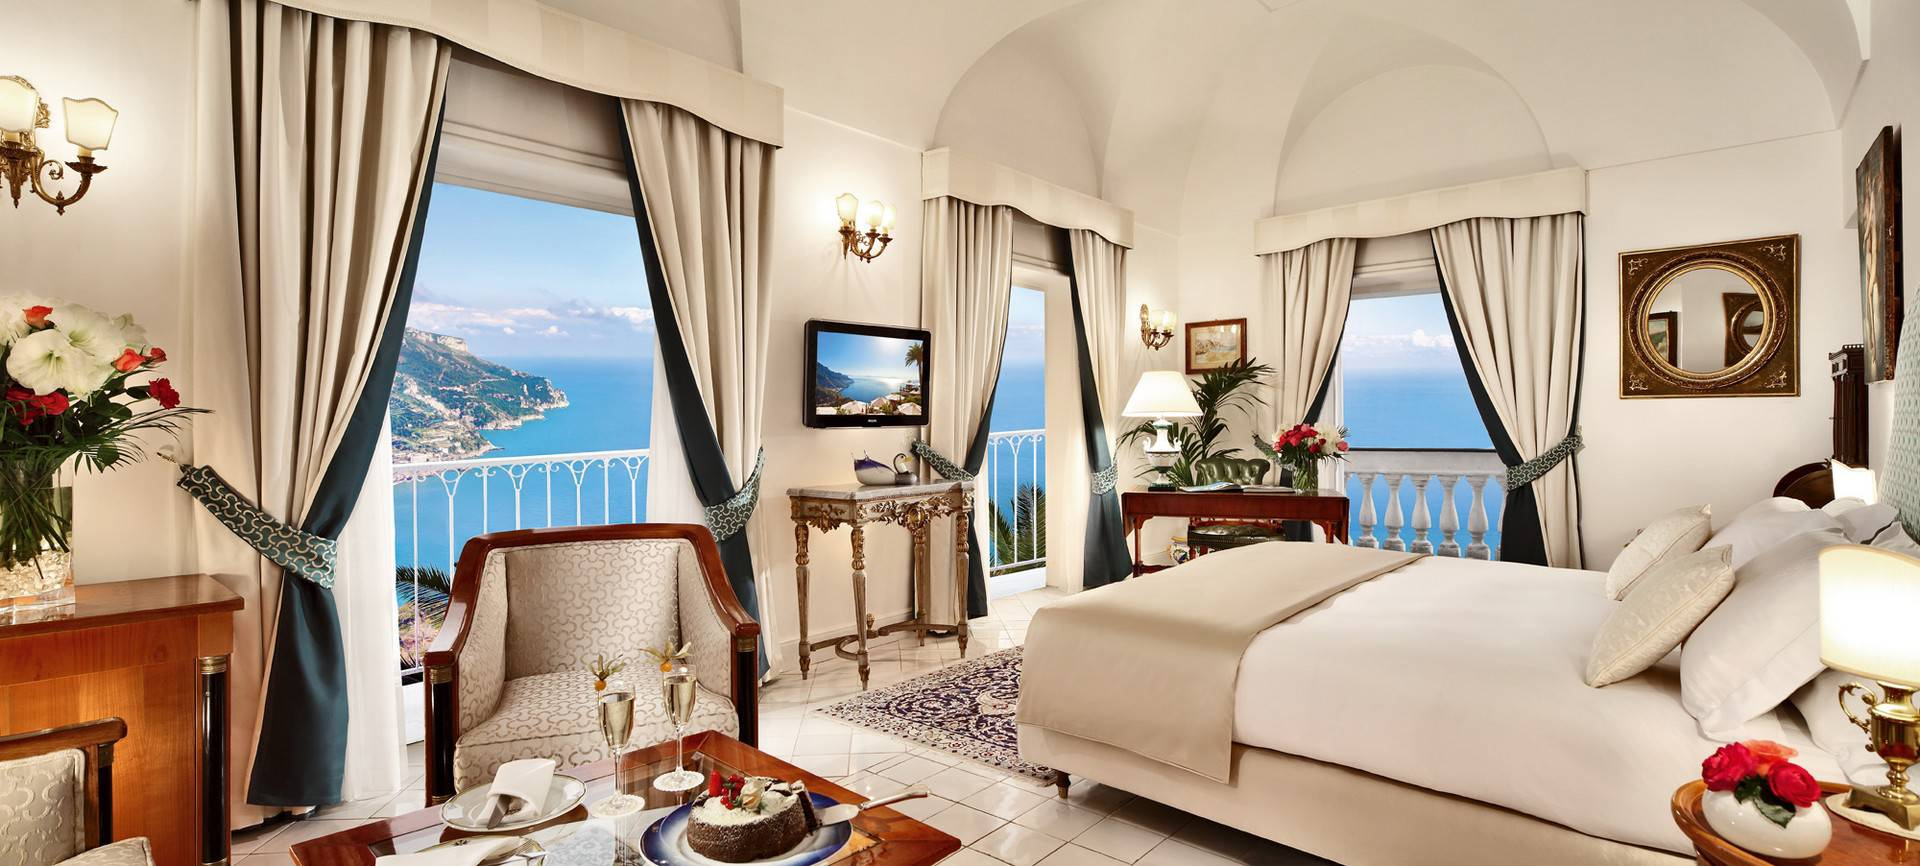 Suites with incredible views